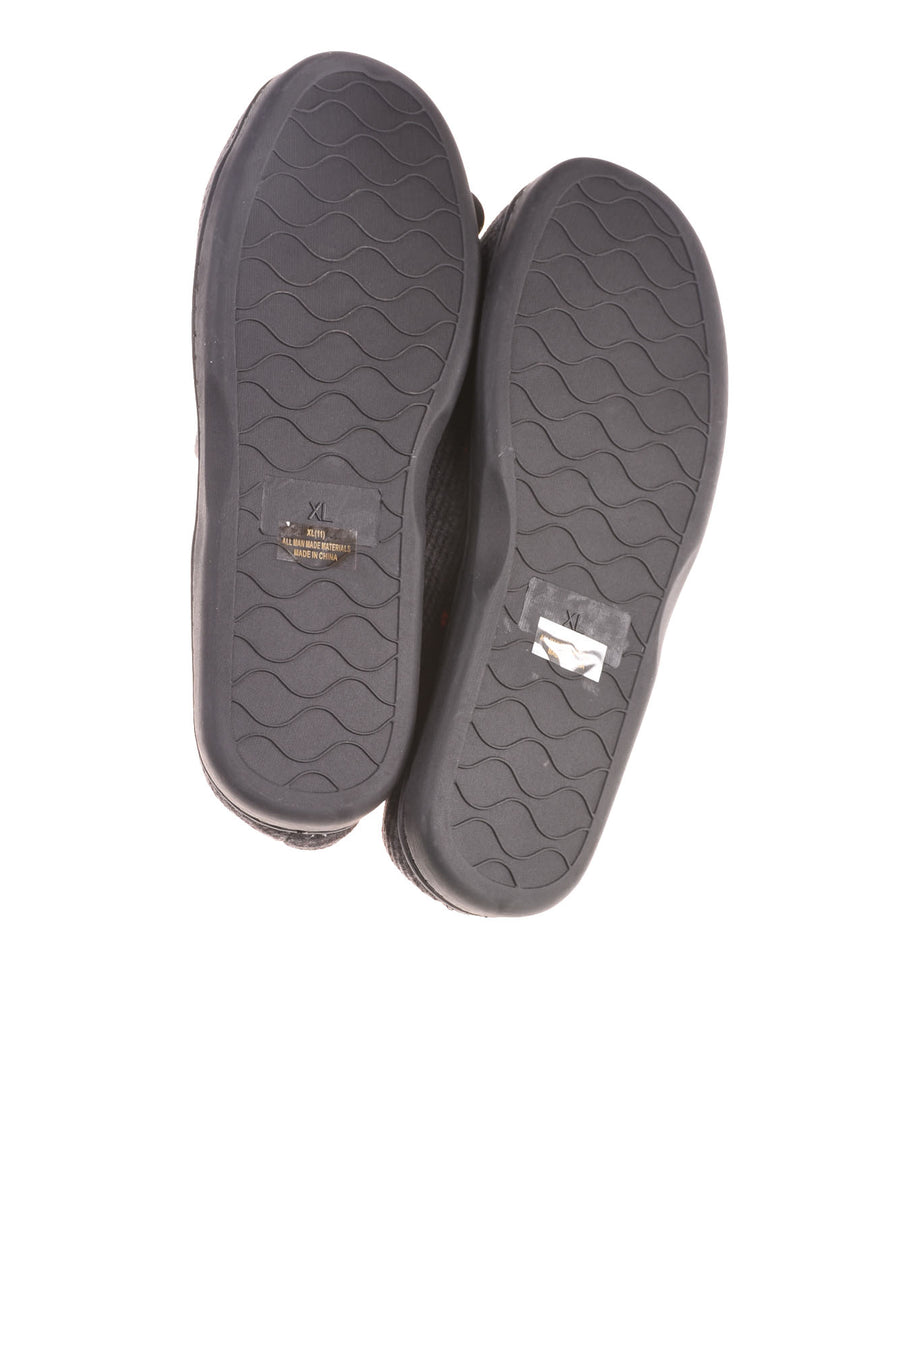 Men's Slippers By Revo